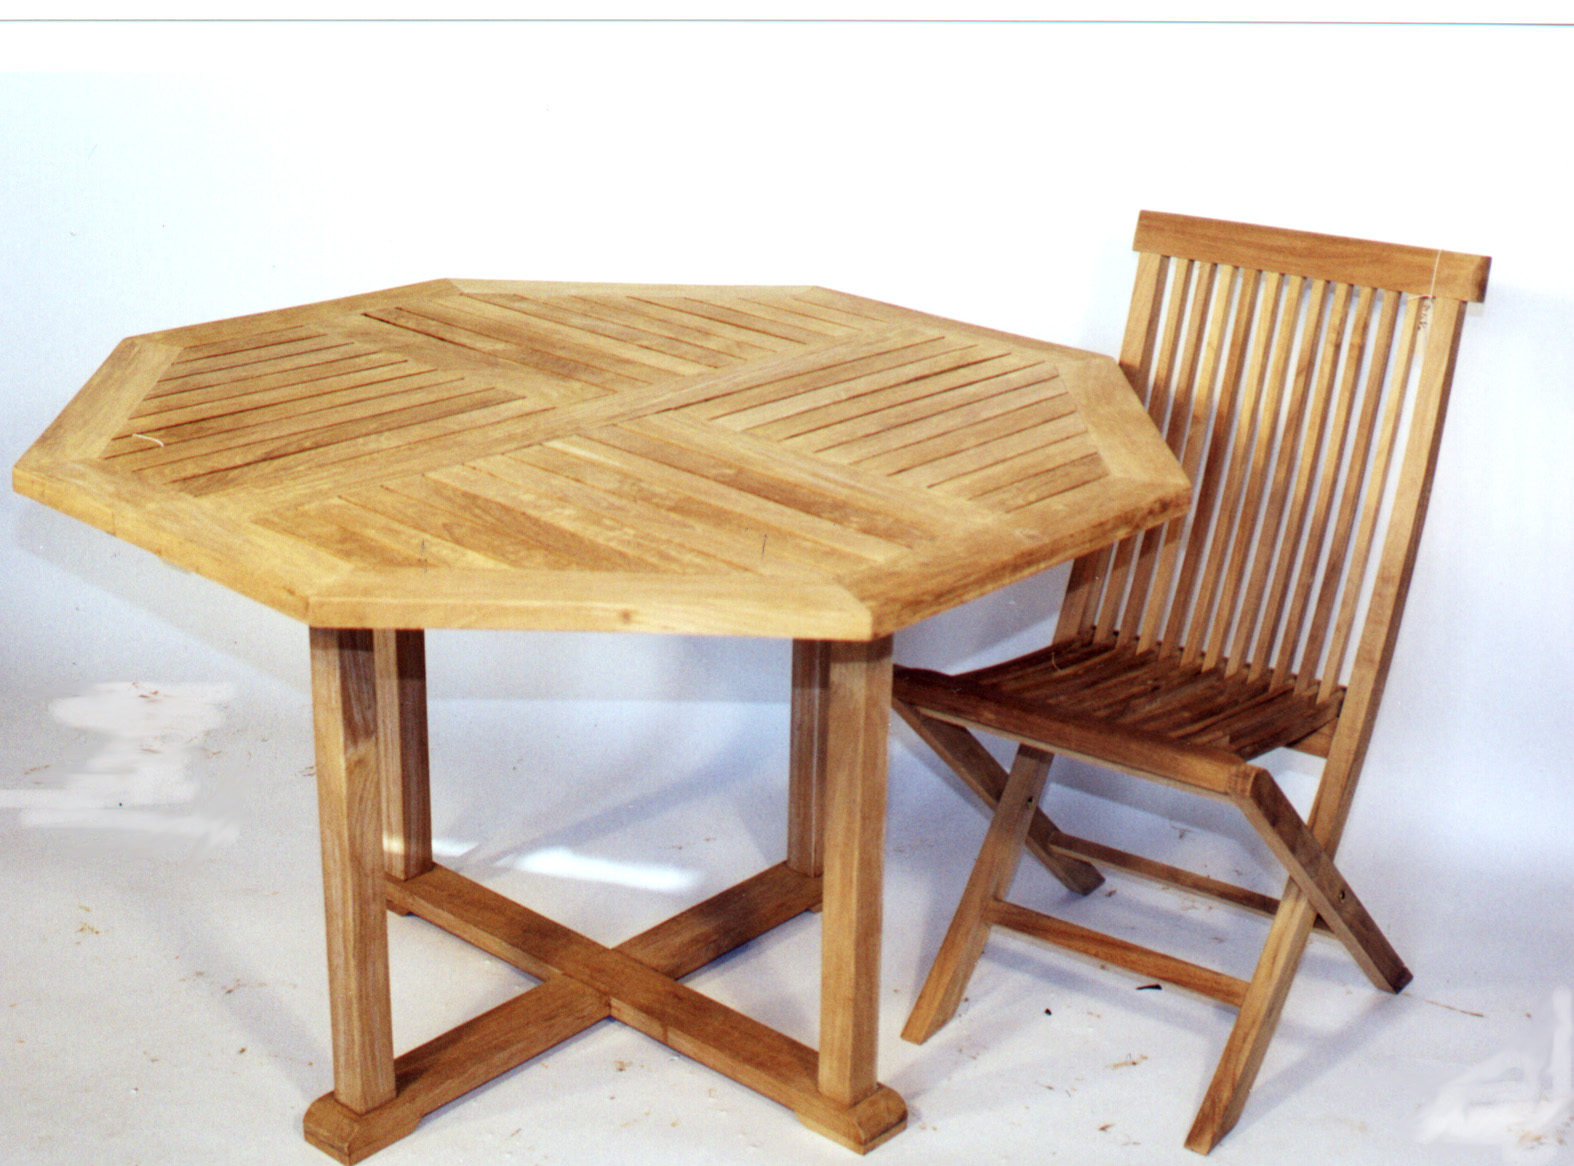 Tables Solid Teak Garden Furniture From The Wood Carver Inc - Solid teak outdoor table